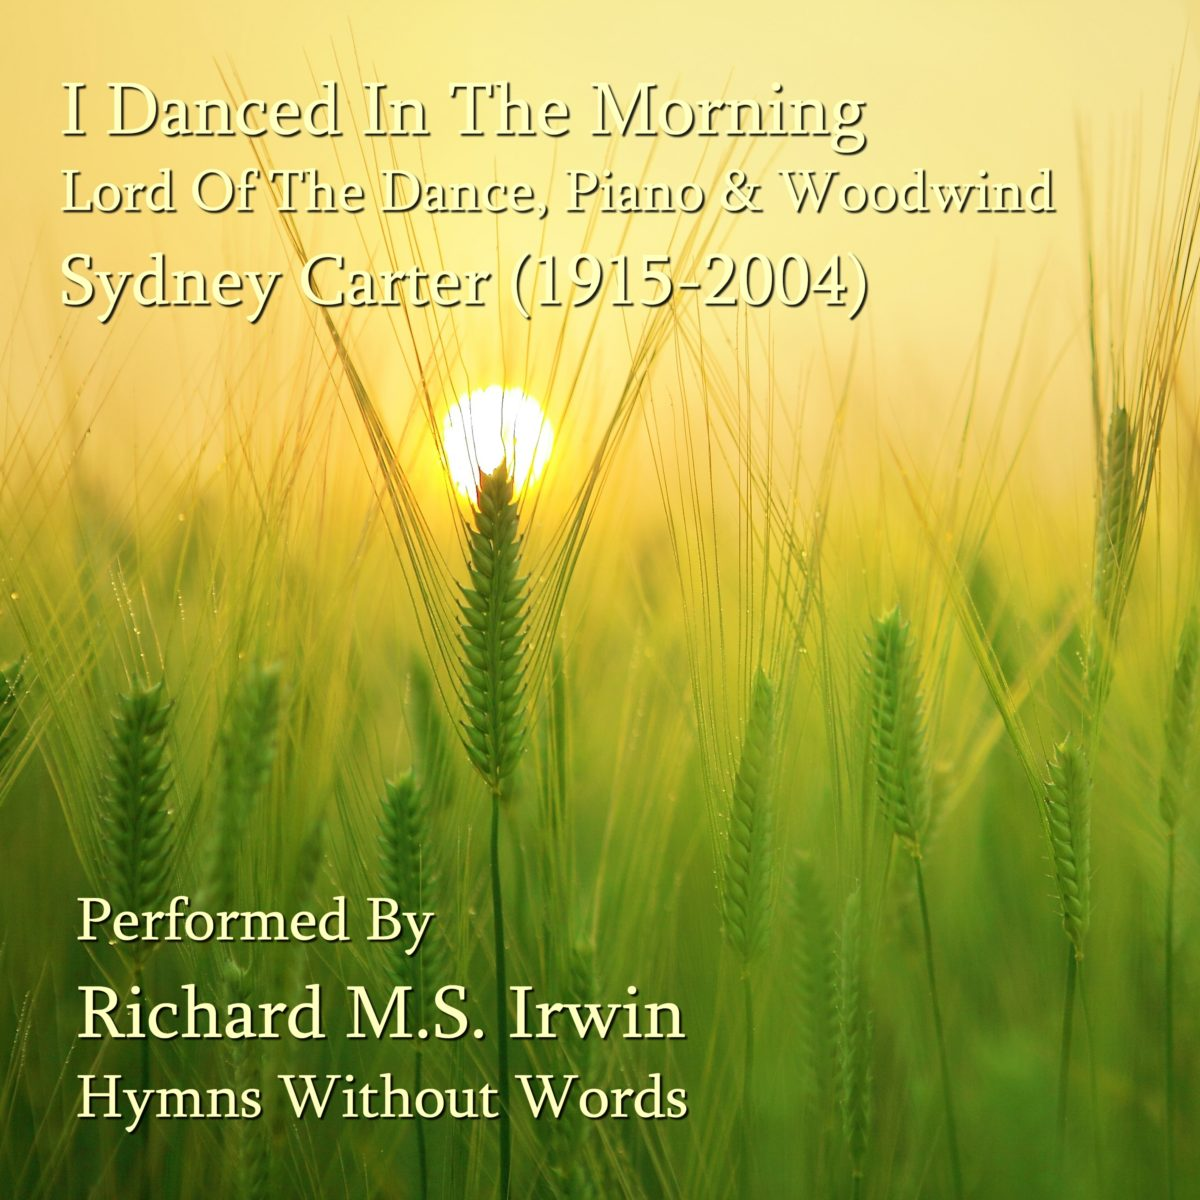 I Danced In The Morning (Lord Of The Dance, Piano Ensemble, 5 Verses)